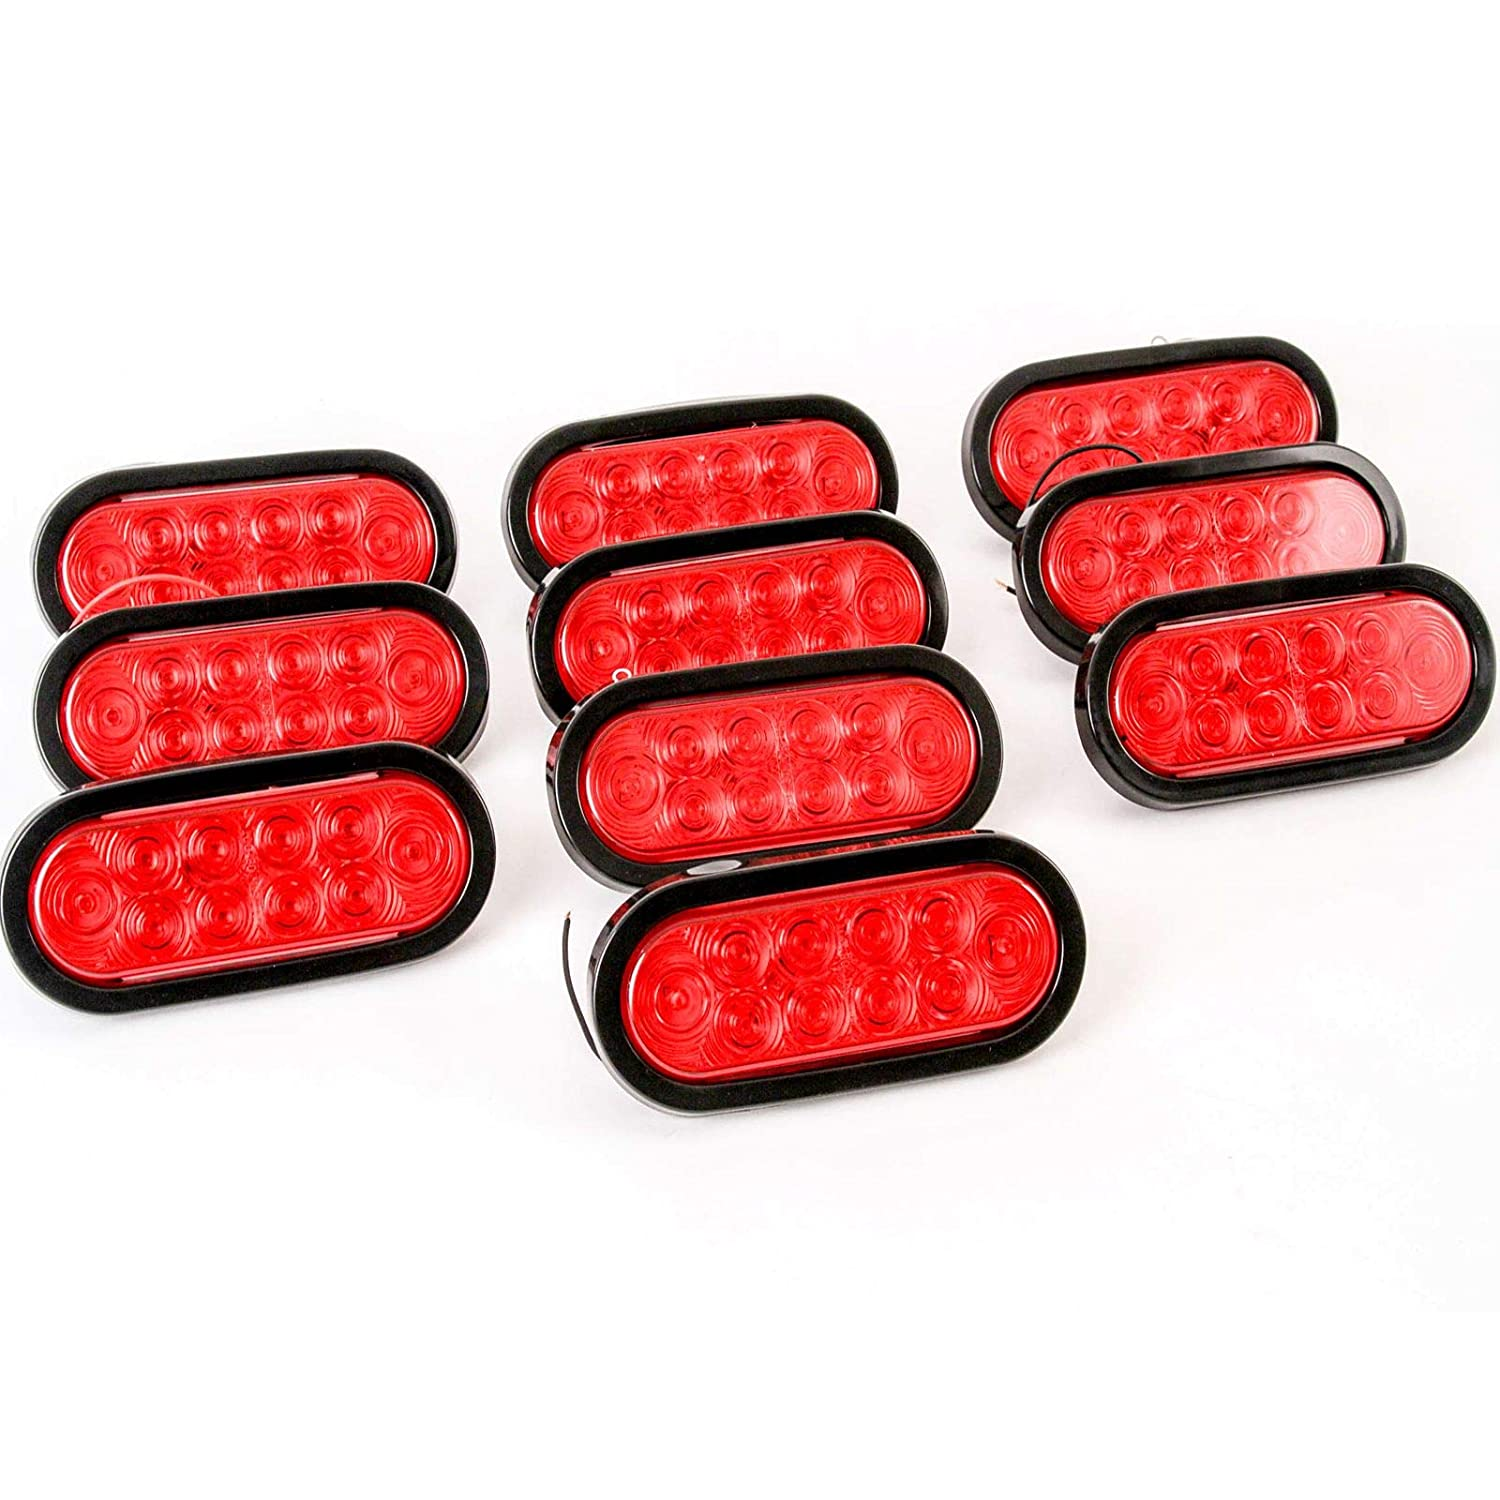 "Sealed Red 6/"" Oval Stop//Turn//Tail Light with 10 LED Diode Great for Trucks and Trailers Red Hound Auto Marine Waterproof DOT Compliant"